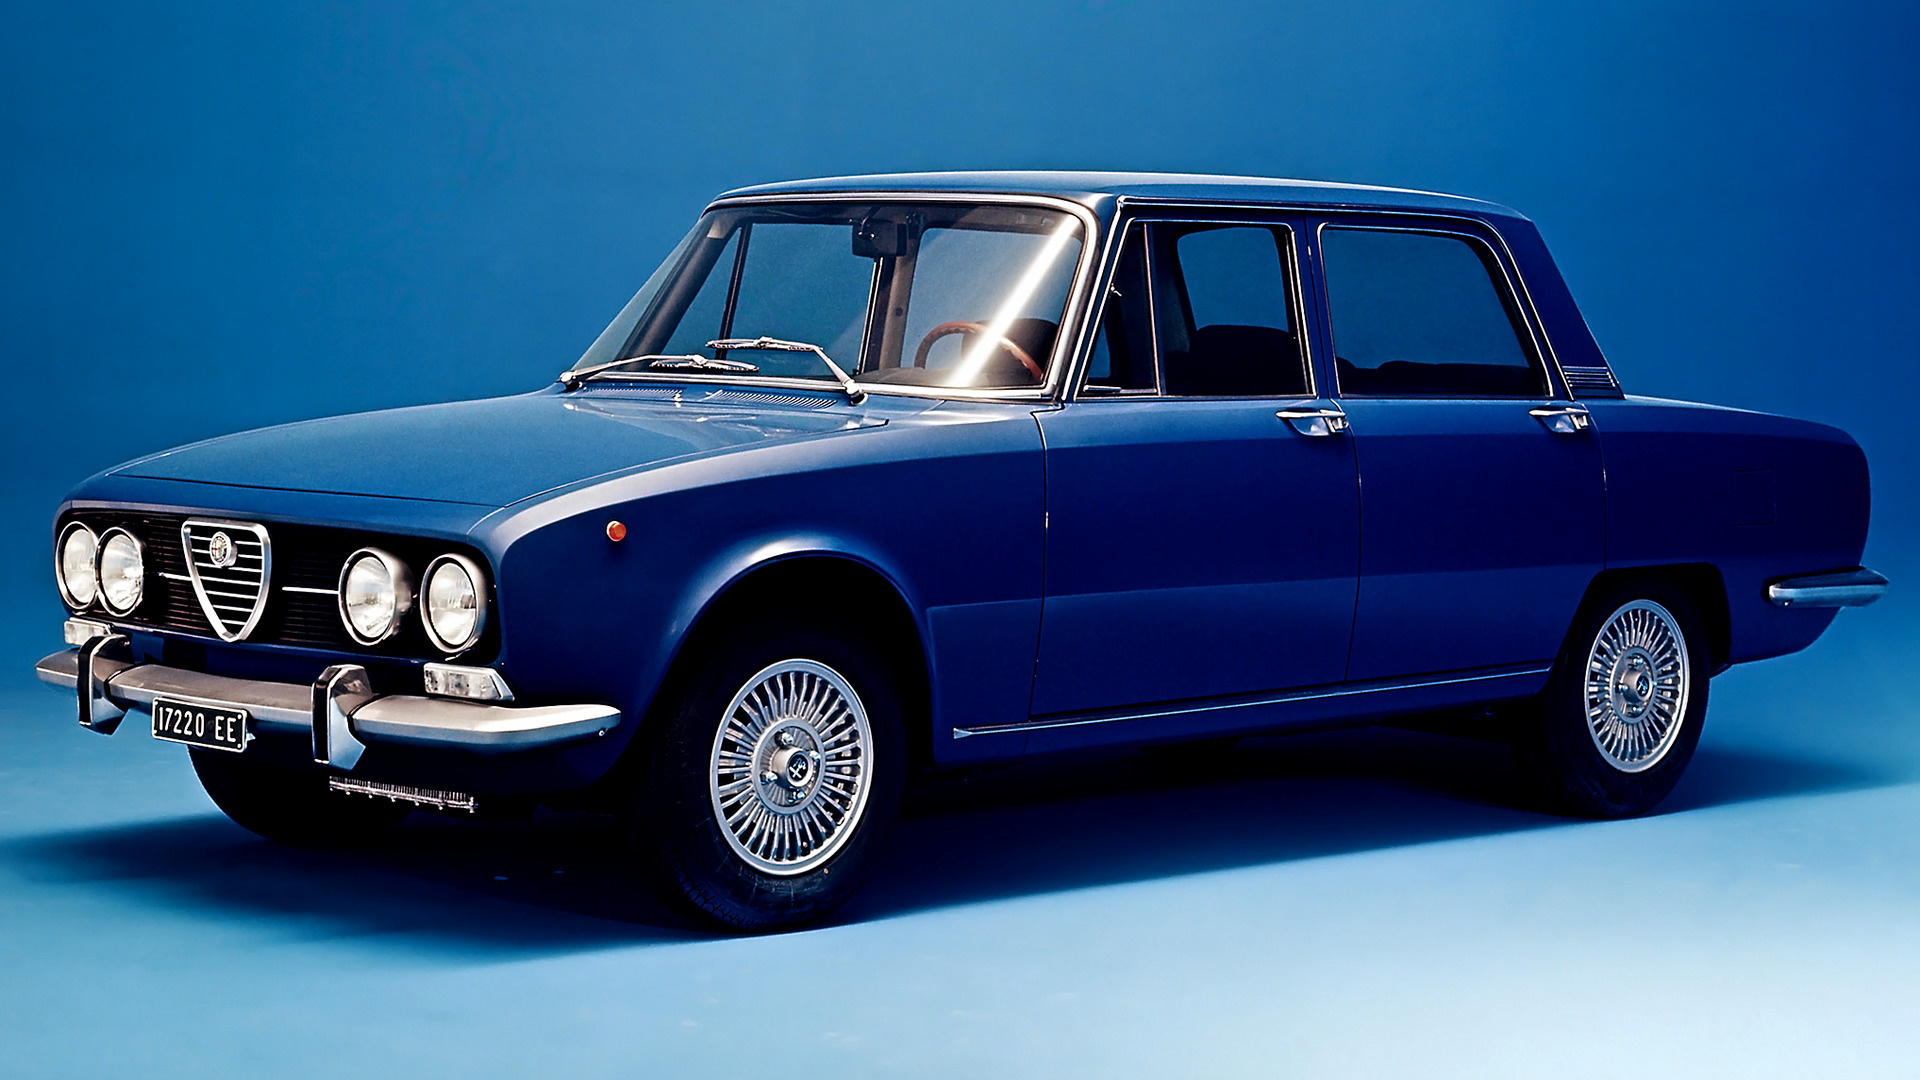 1971 Alfa Romeo 2000 Berlina - Wallpapers and HD Images ...